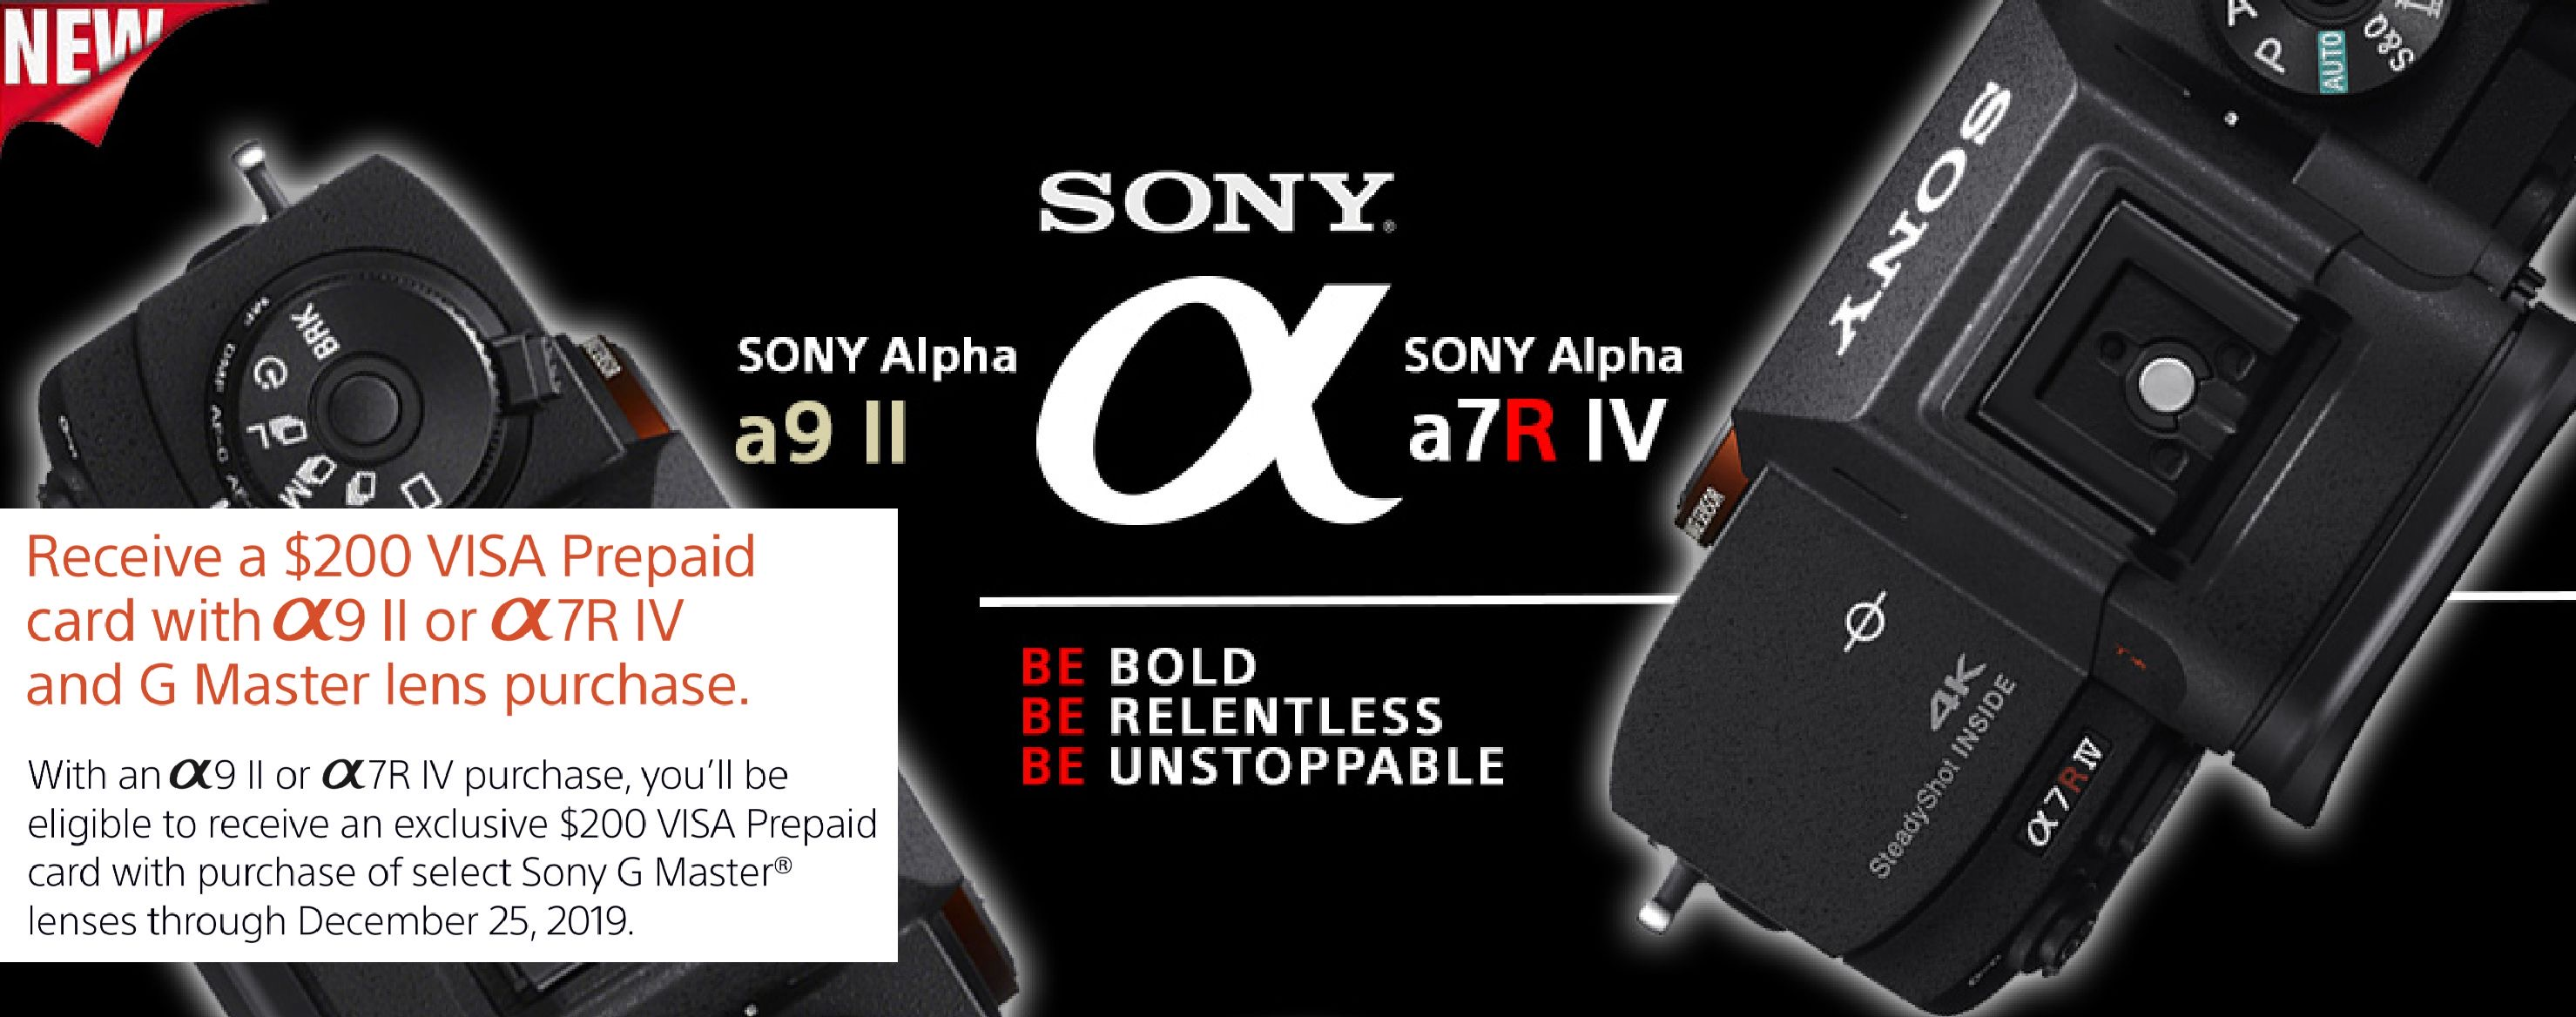 Sony Promotion!